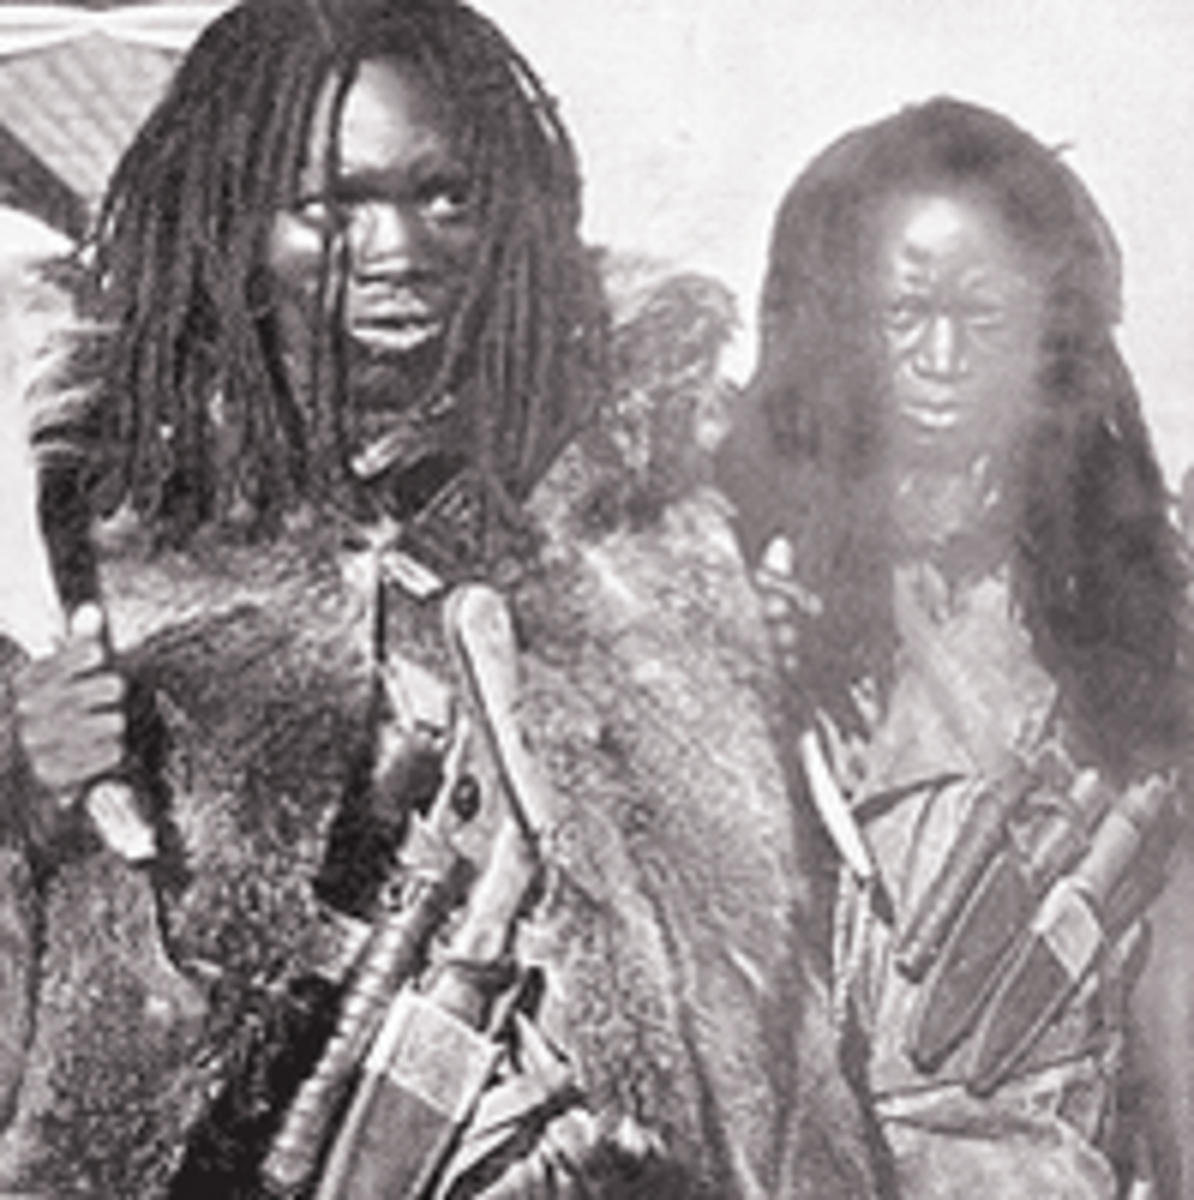 Mau Mau Warriors wearing Dreadlocks as a virtue of rebellion.